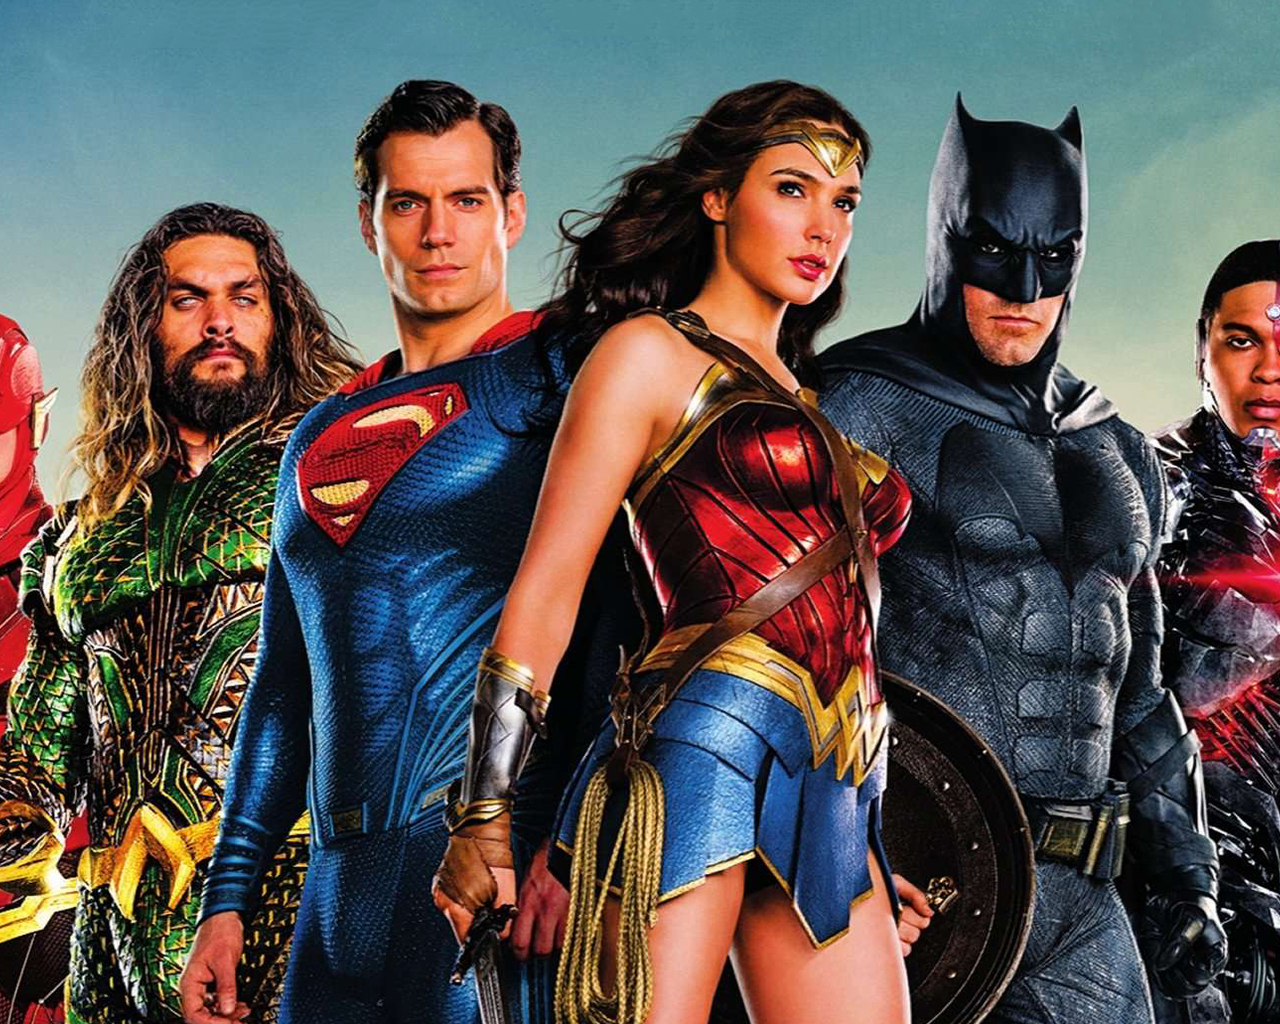 justice-league-movie-poster-so.jpg